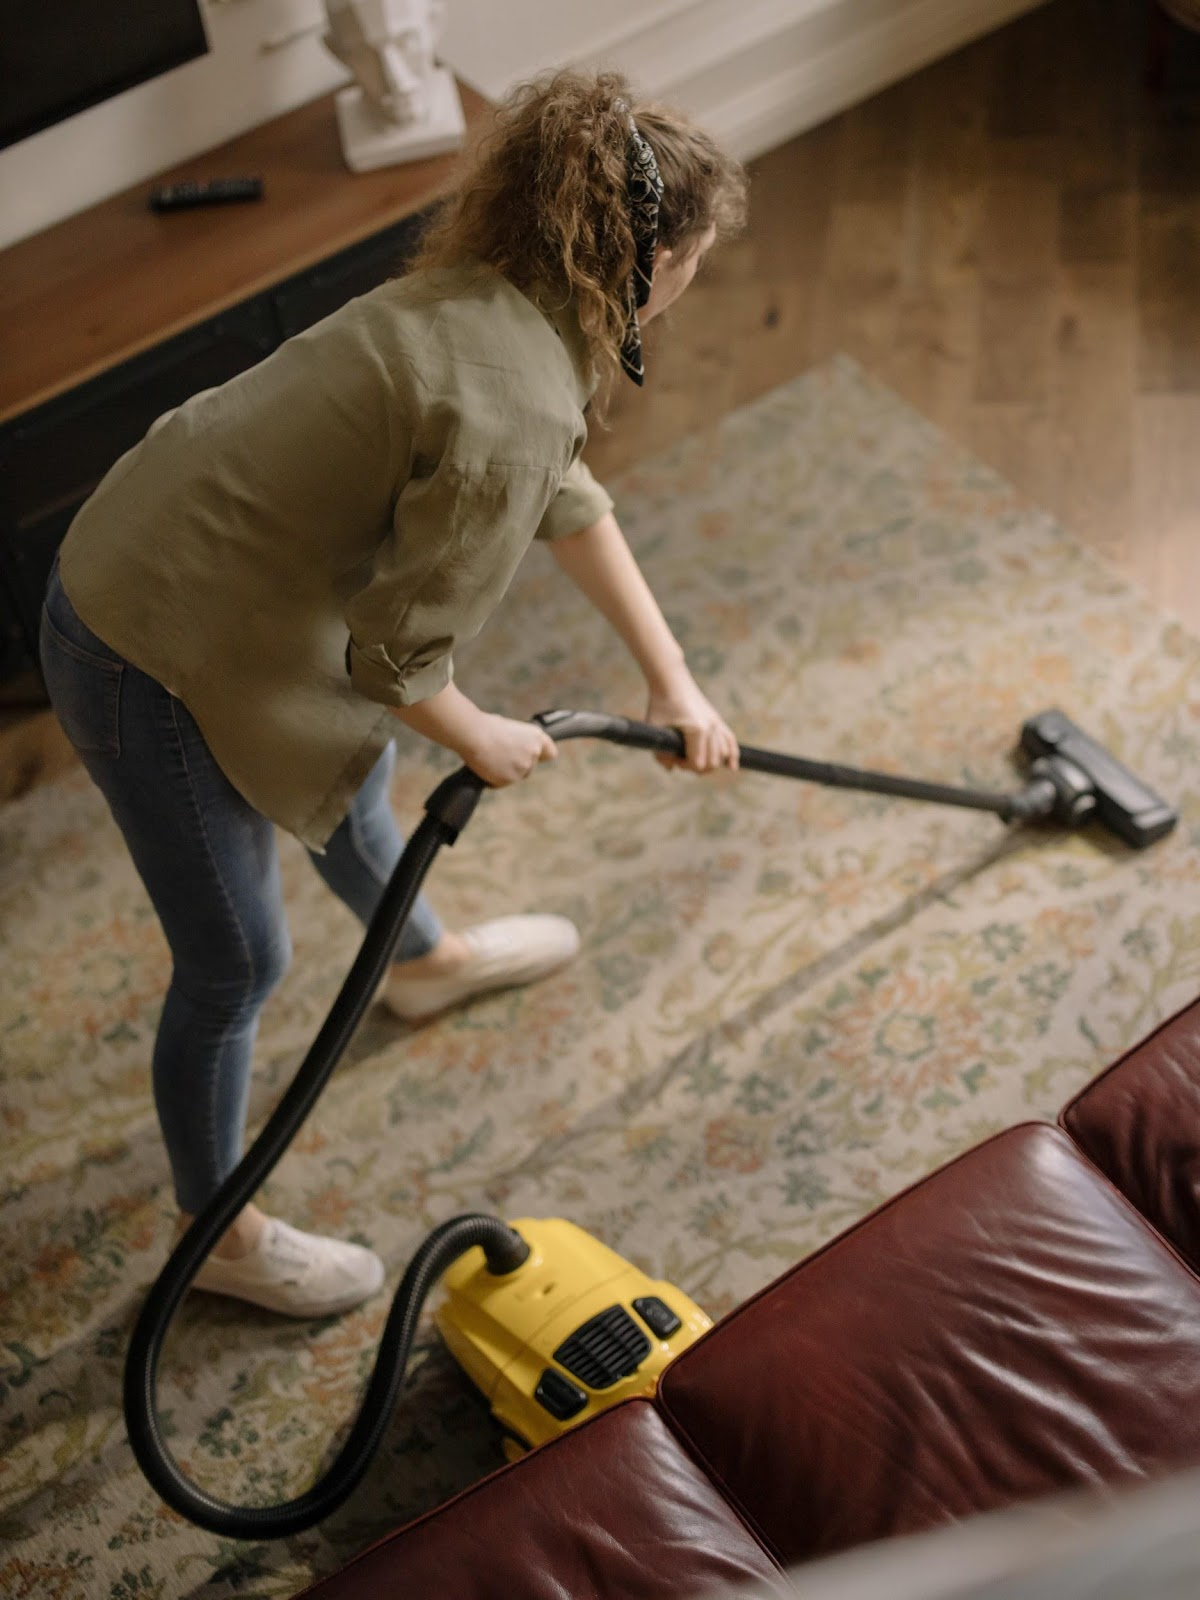 lady spring cleaning her home - vacuuming the carpet